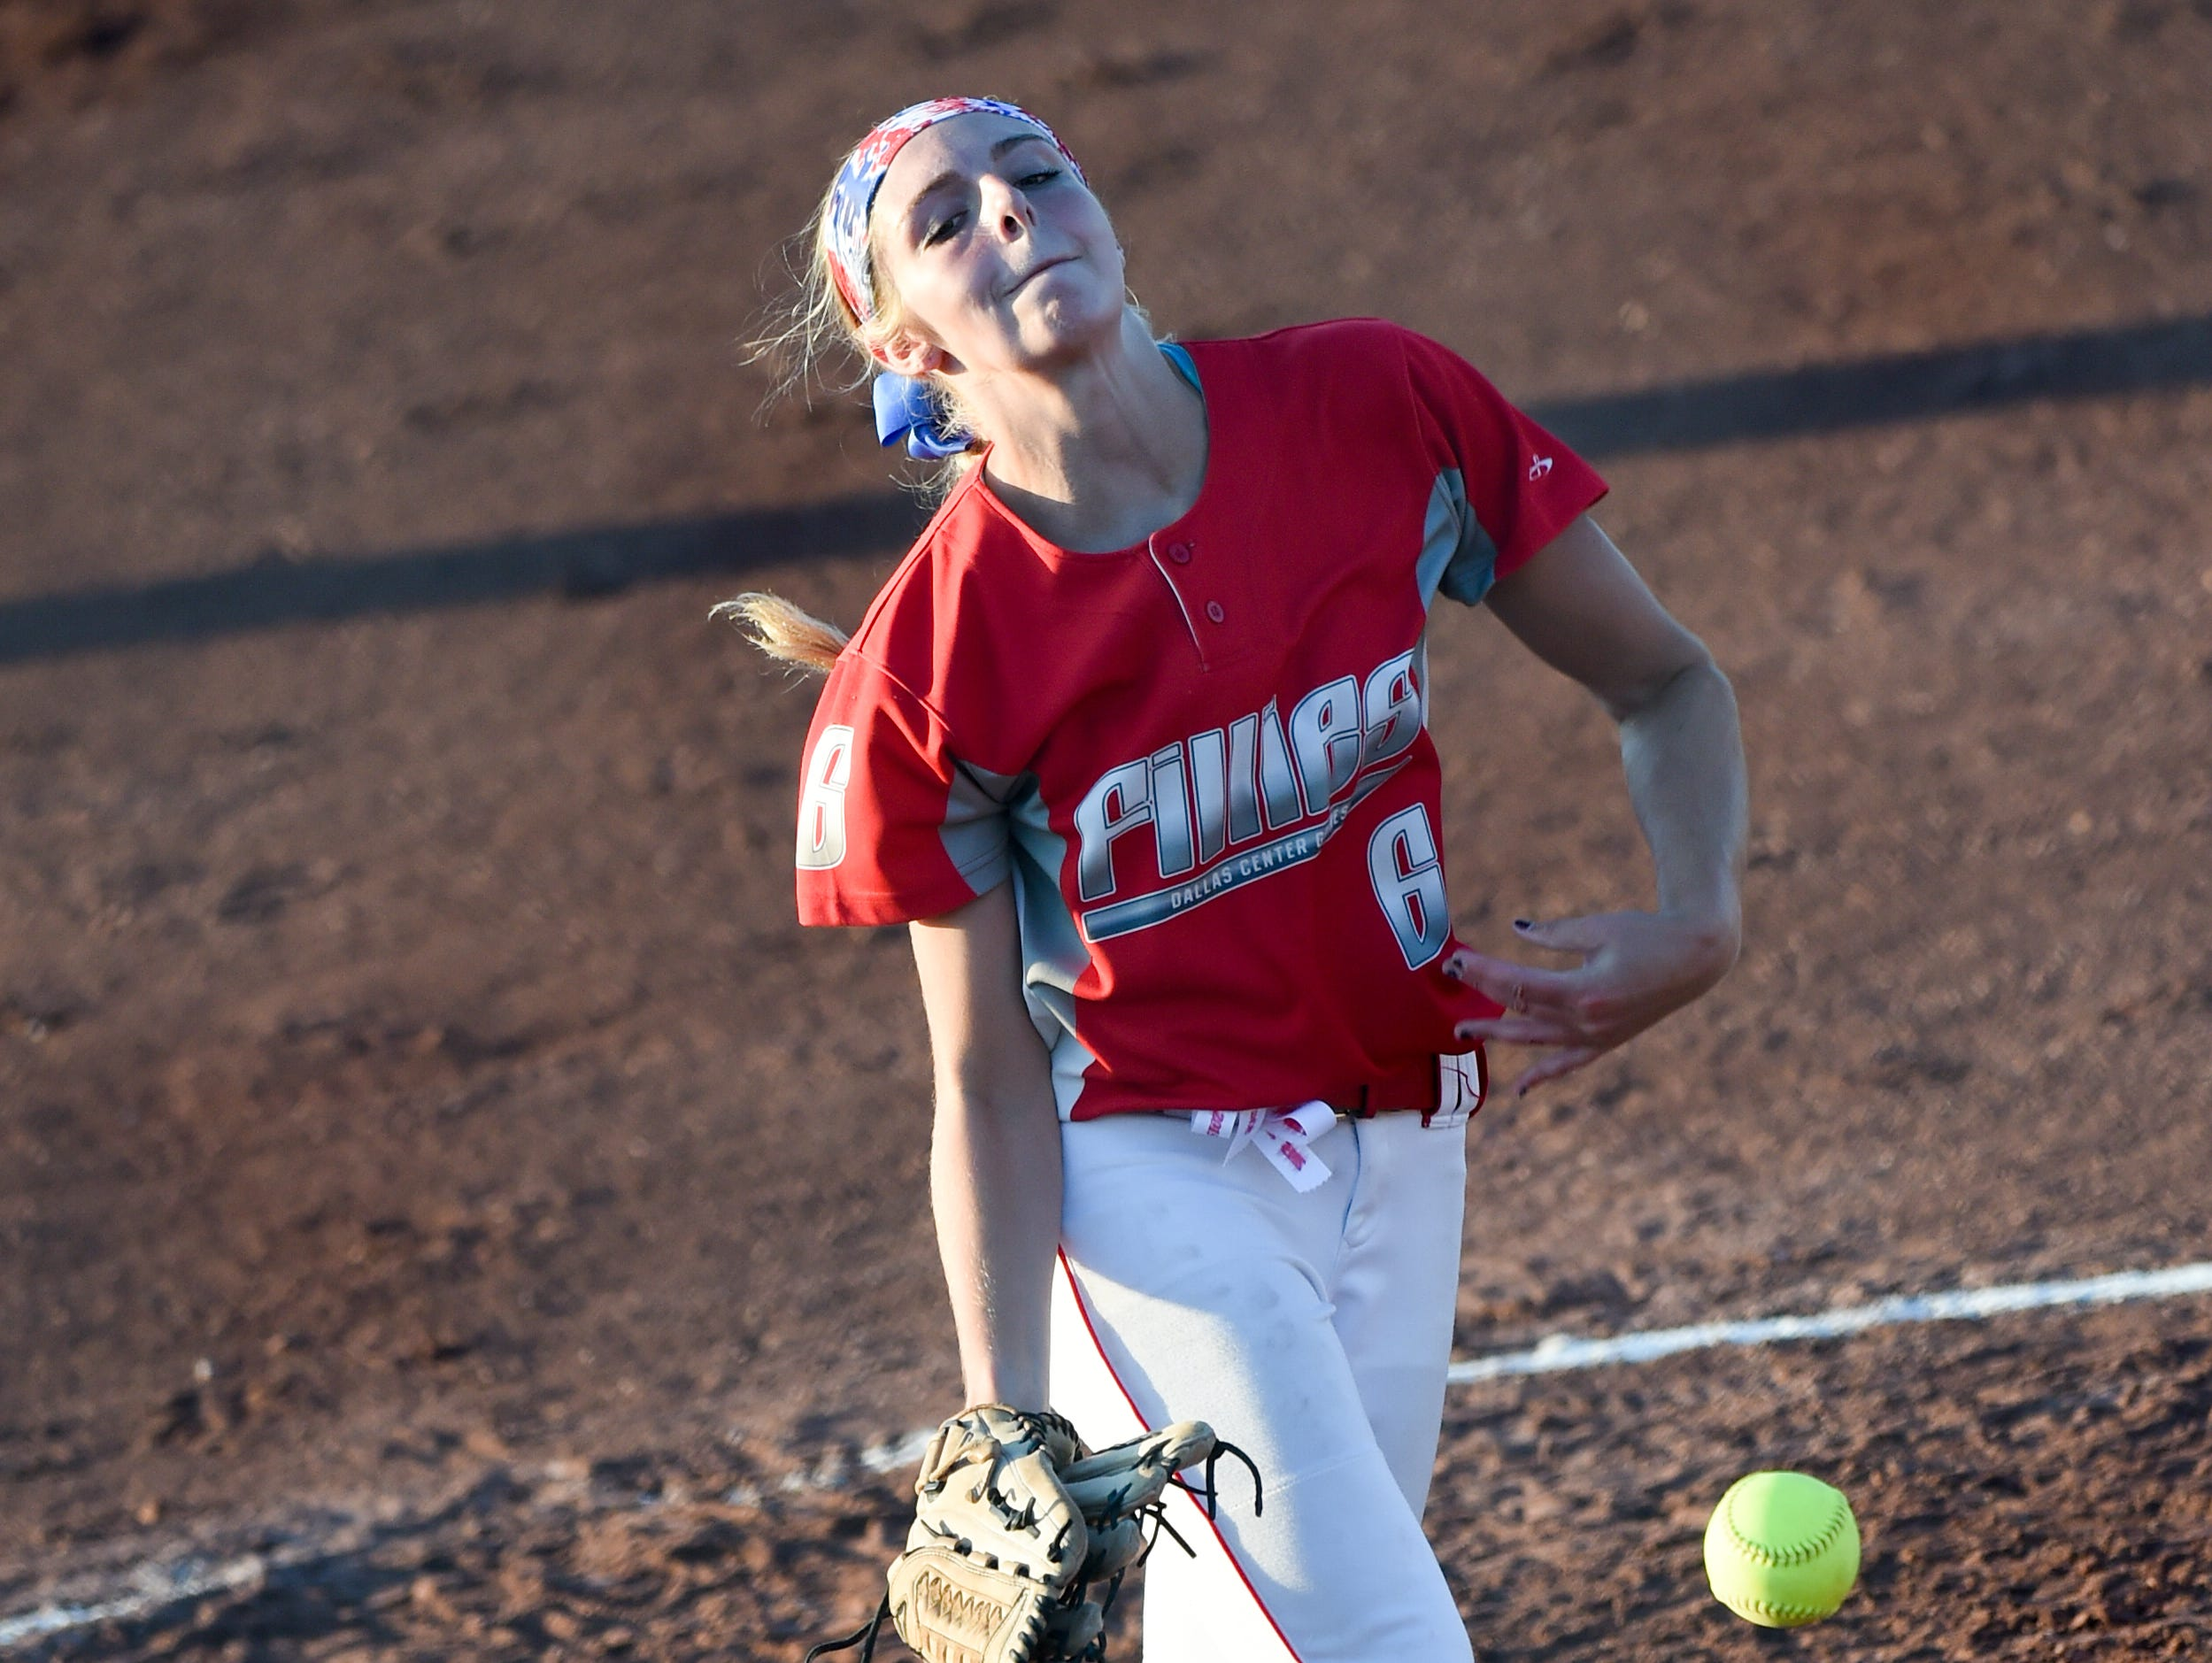 DC-G pitcher Rachel Lowrey (6) throws a pitch on Thursday, July 23, 2015, during the Class 4-A semifinals.